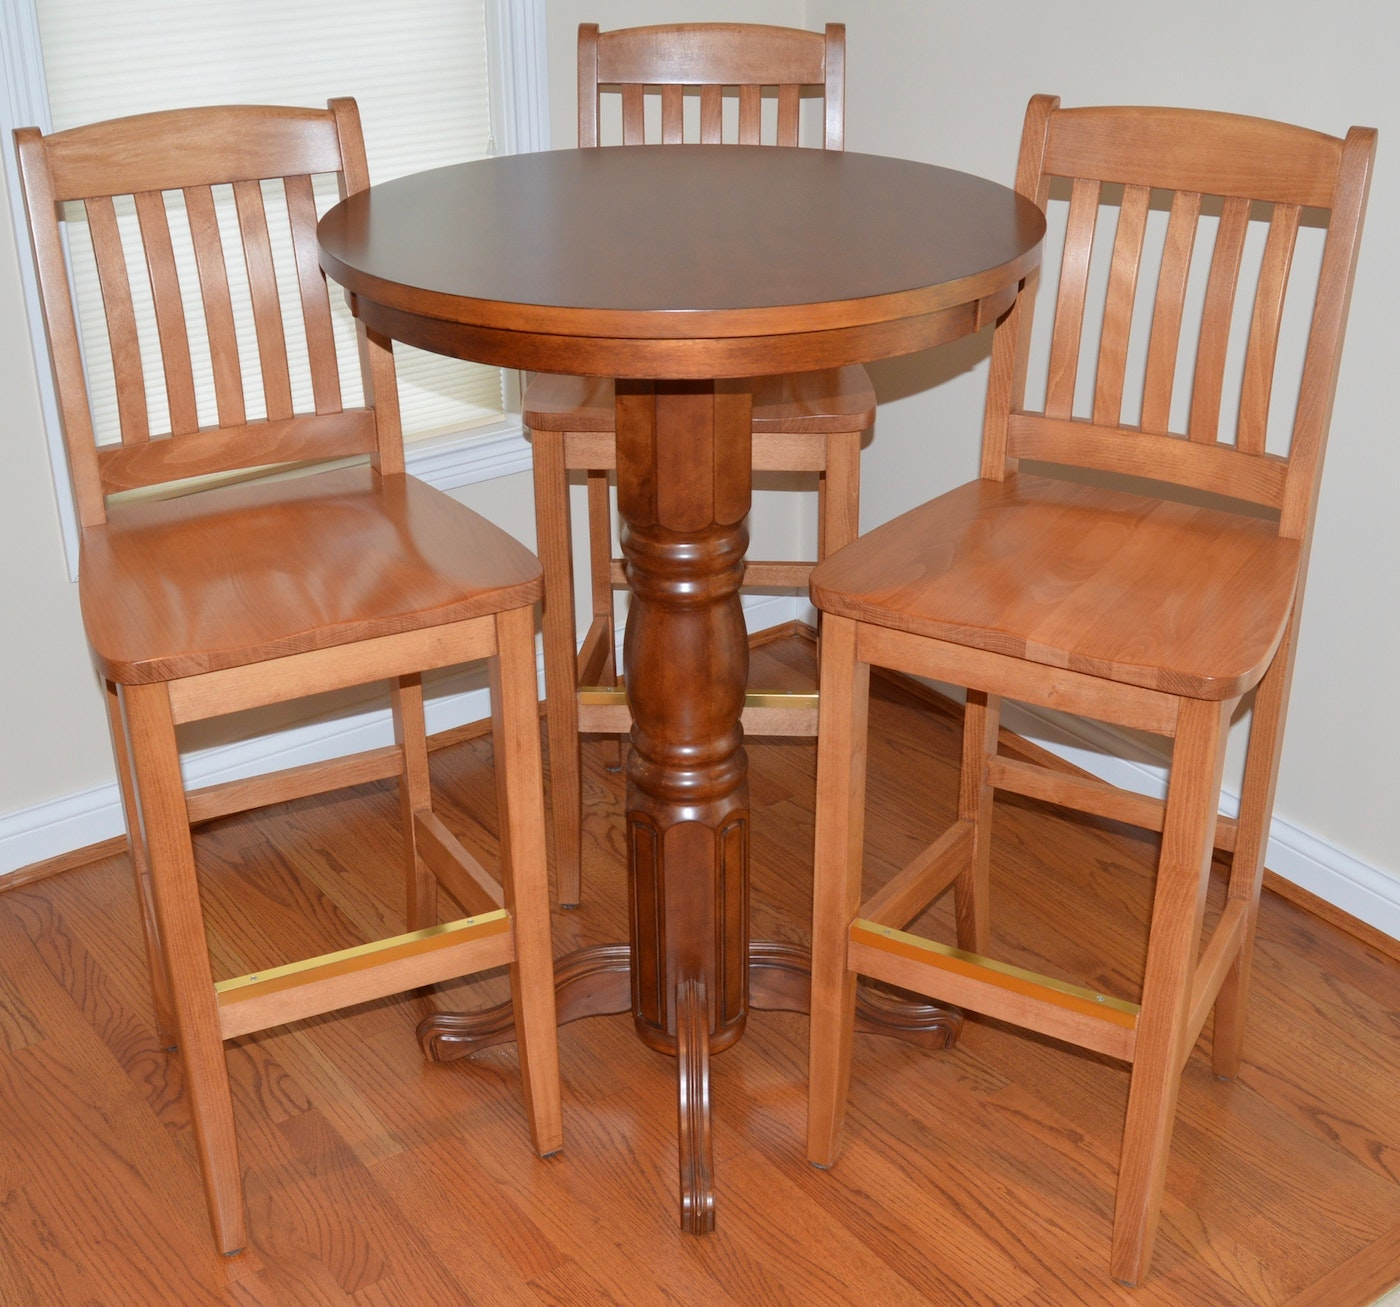 Pub table and chairs ebth for Transmutation table 85 items